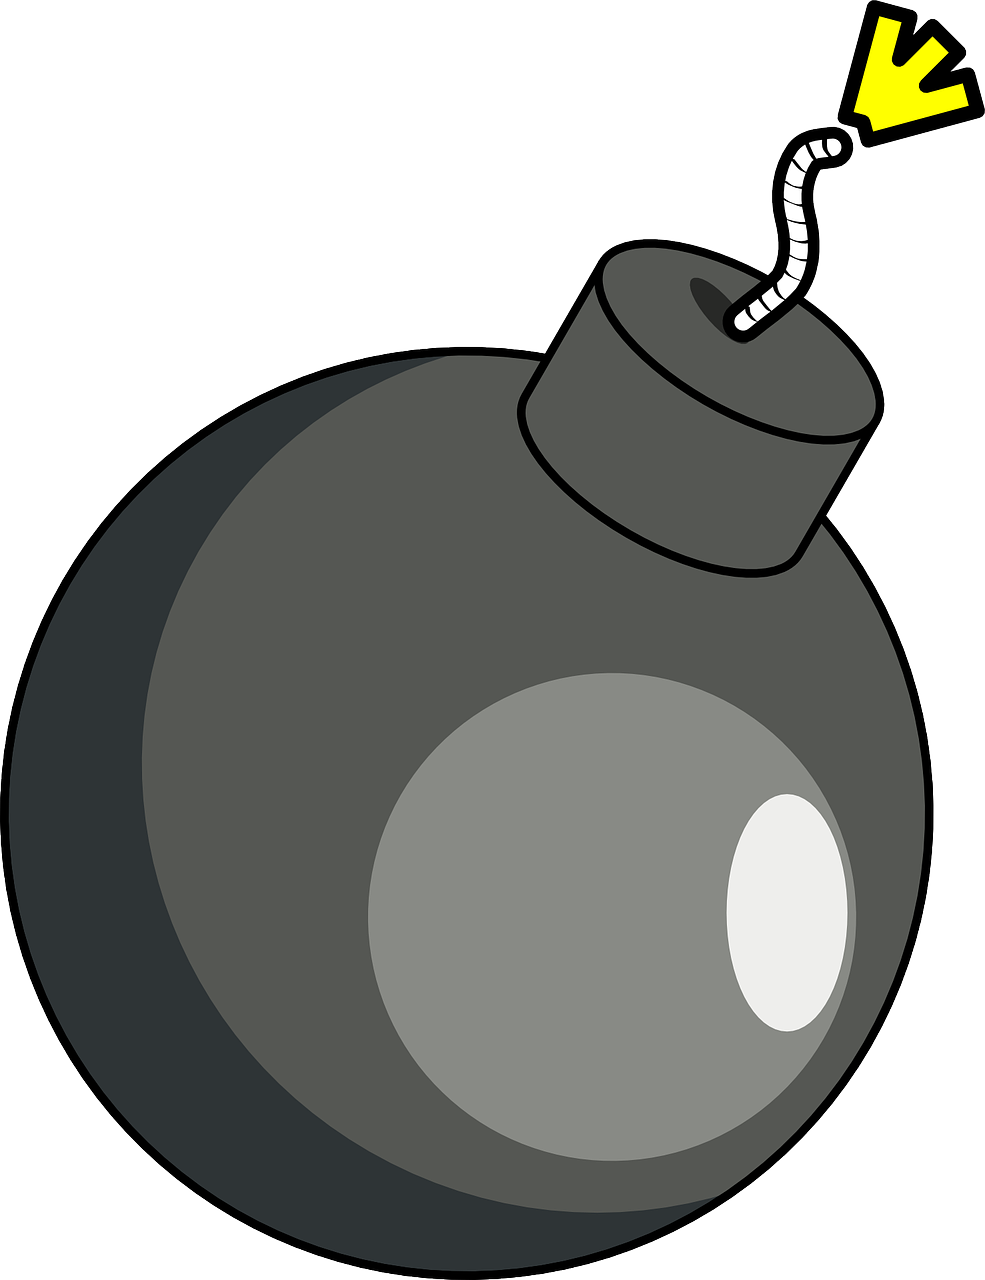 Bomb clipart. Free cartoon cliparts download